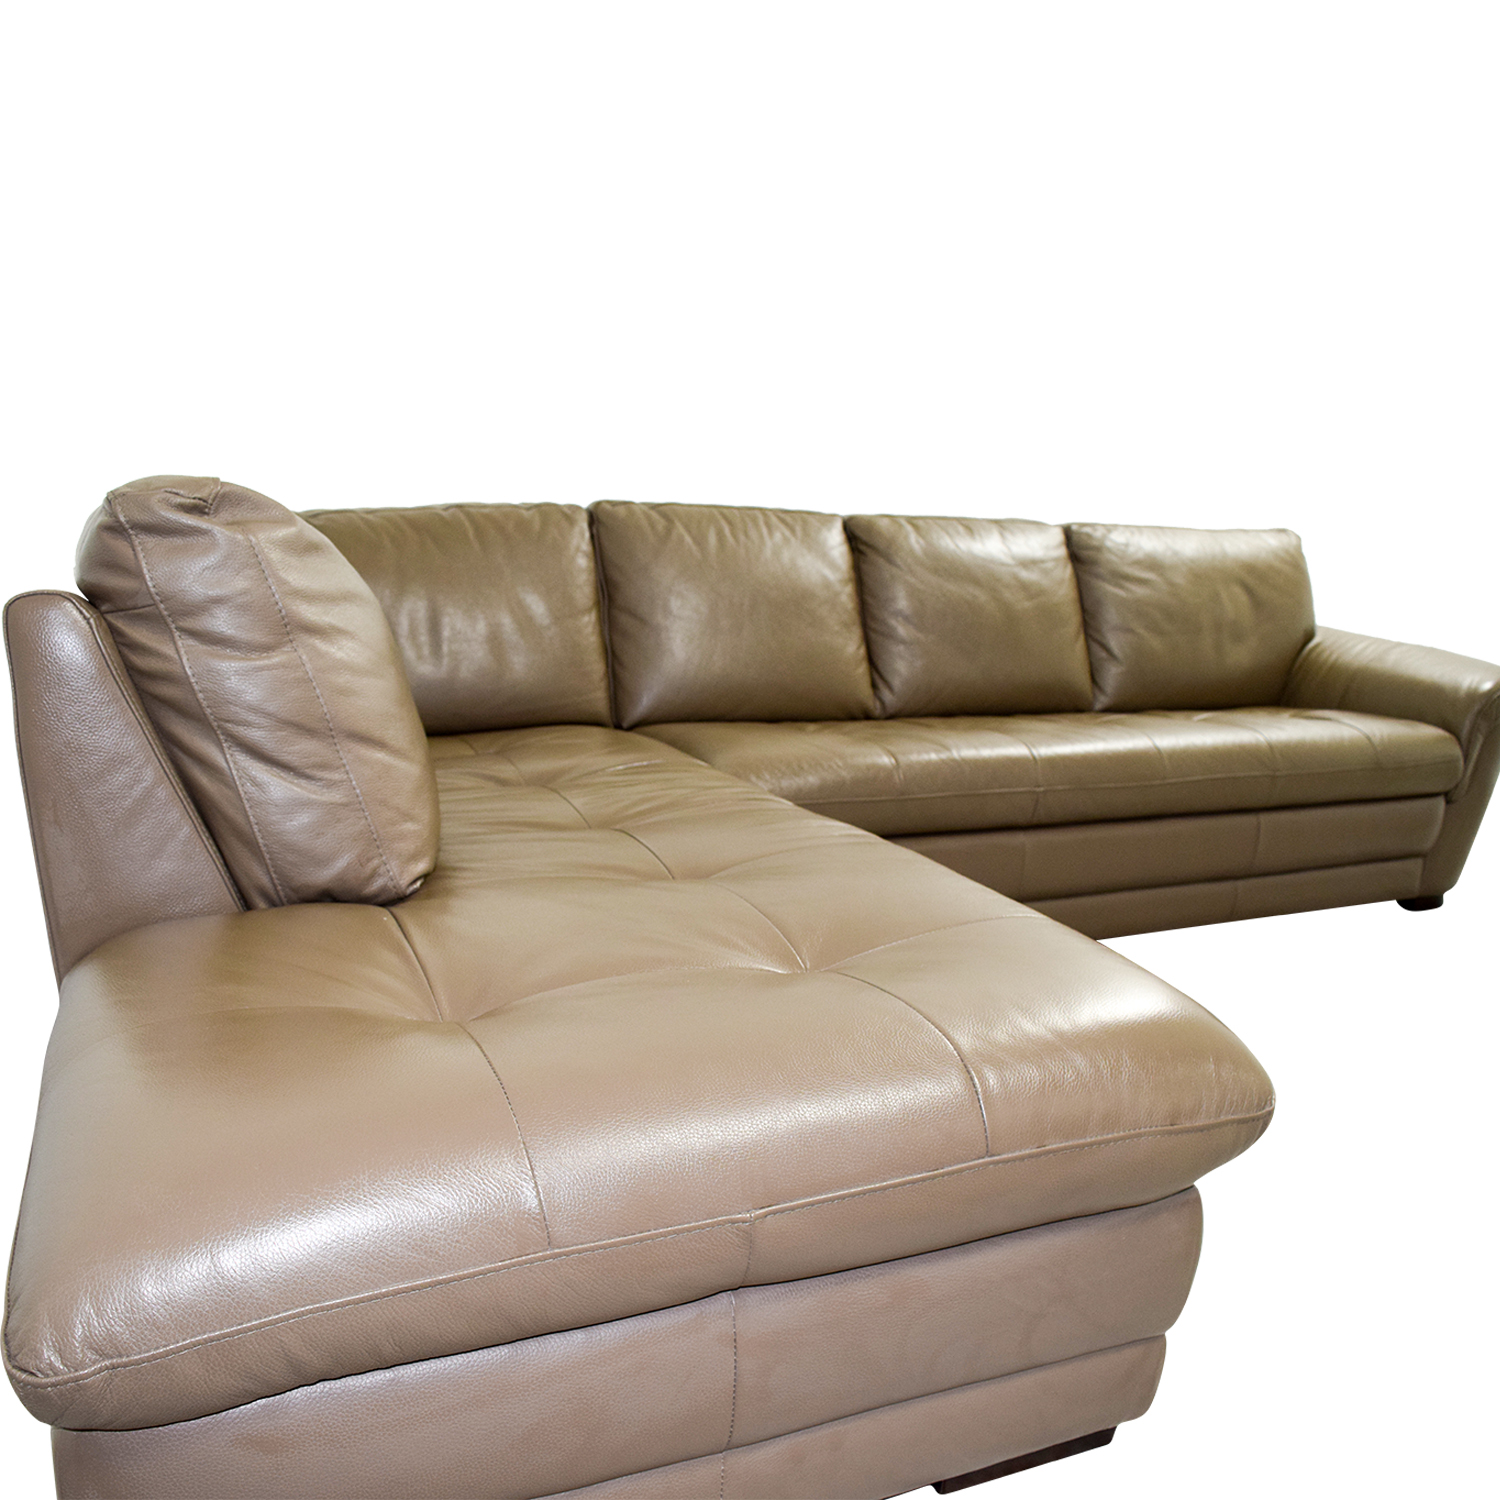 raymour and flanigan chairs special tomato chair 72% off - & garrison tufted leather sectional / sofas